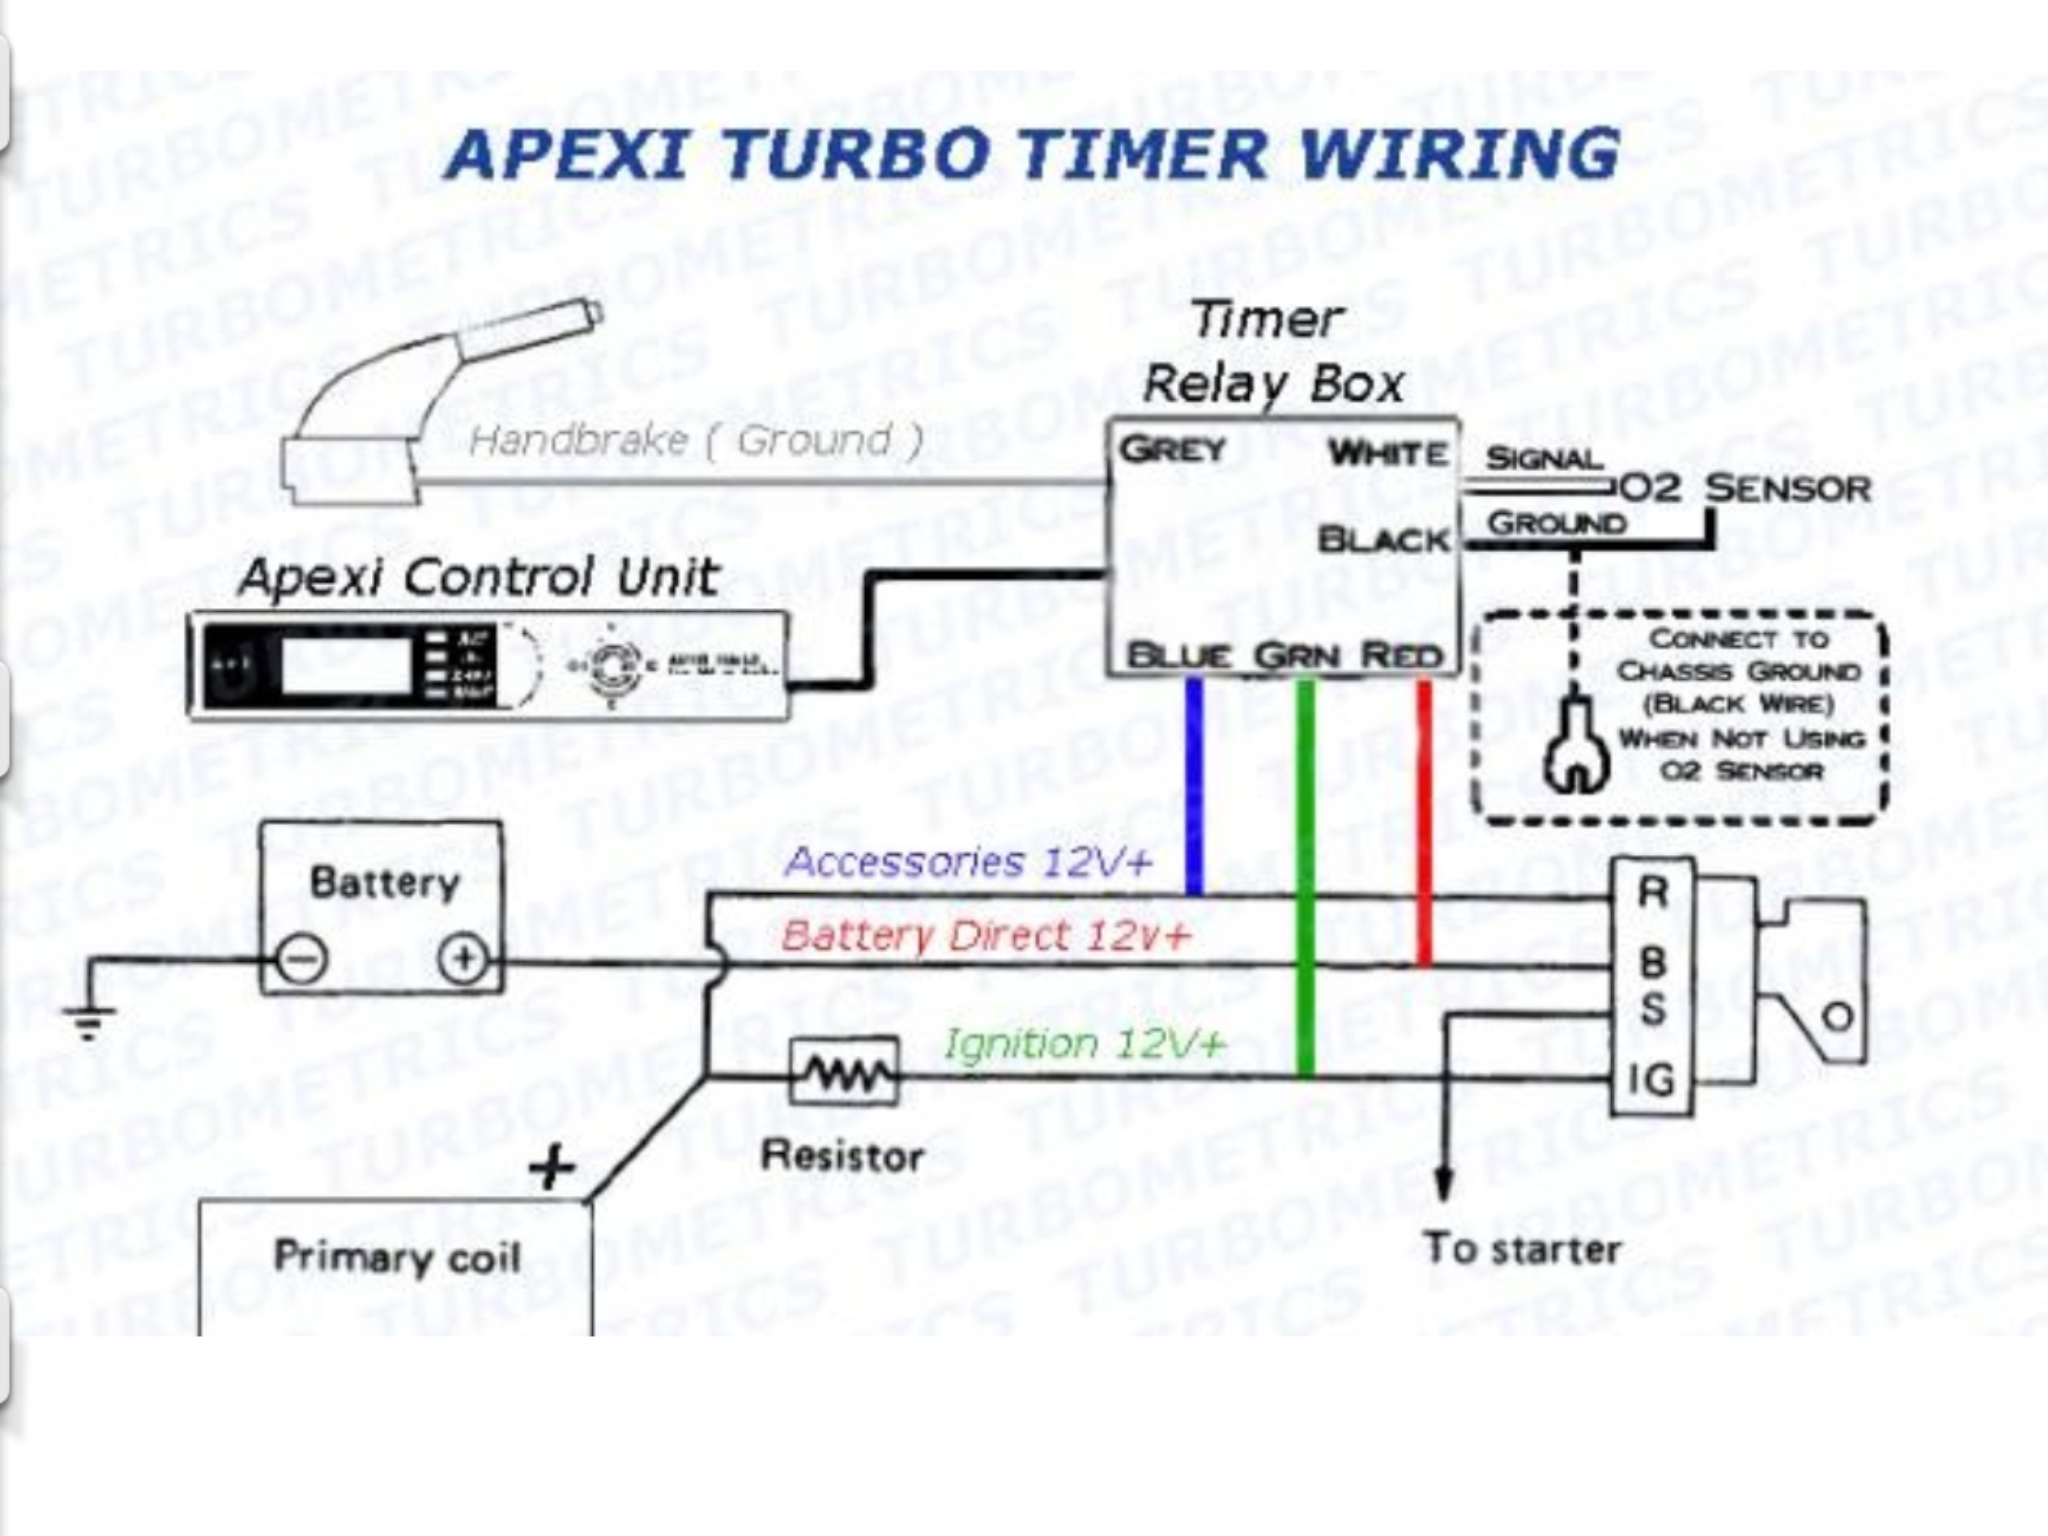 Turbo Timer Install Wiring The Ranger Station Forums 02 Sensor Diagram 2010 Terrain So Im Having Trouble Figuring Out Exactly Where To Wire This Thing I Have Looked At Diagrams For My Truck And Color Codes Are Completely